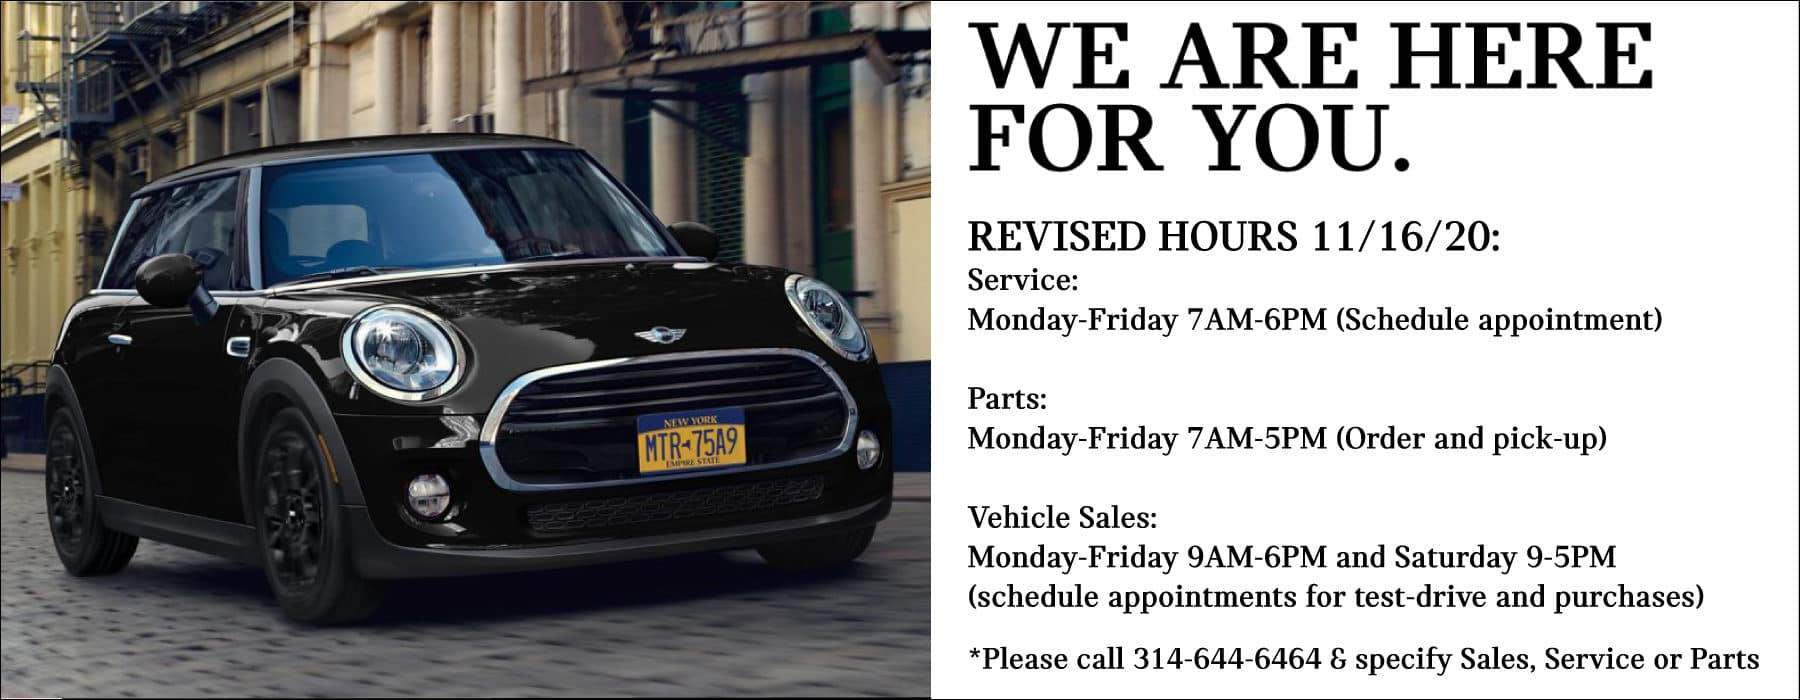 REVISED HOURS 11/16/20: Service: Monday-Friday 7AM-6PM (Schedule appointment) Parts: Monday-Friday 7AM-5PM (Order and pick-up) Vehicle Sales: Monday-Friday 9AM-6PM and Saturday 9-5PM (schedule appointments for test-drive and purchases)